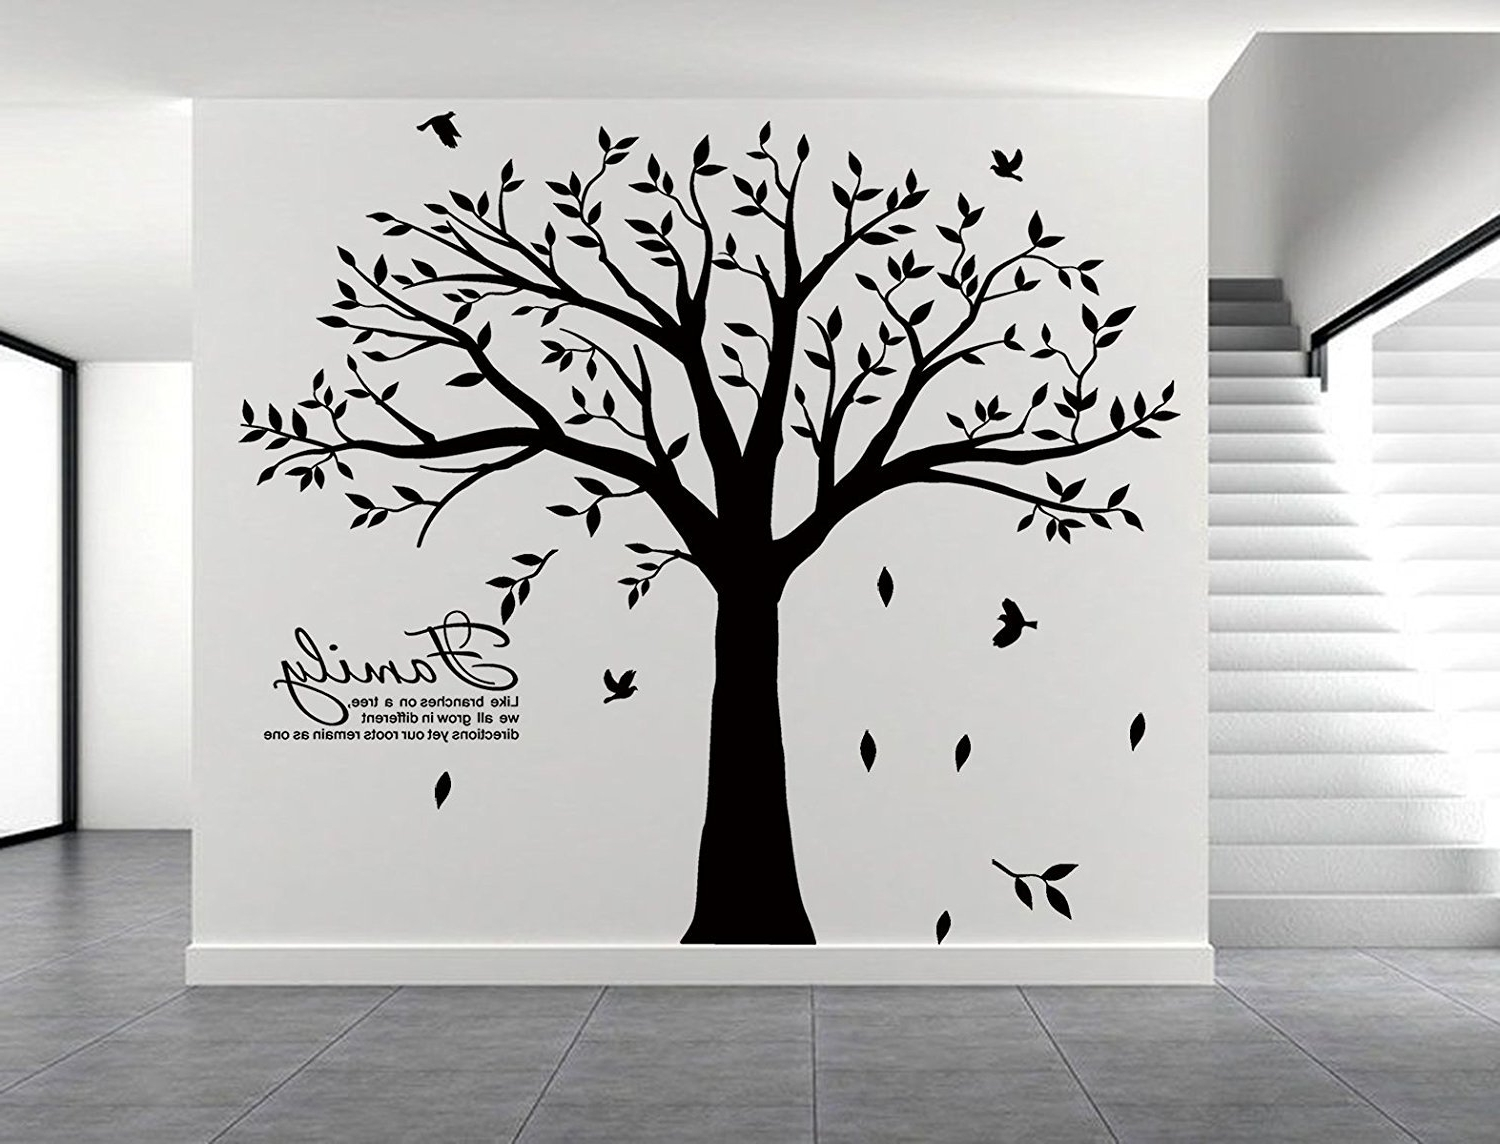 New Family Tree Wall Decal Vinyl Stickers Living Room Home Decor Intended For Recent Family Tree Wall Art (View 11 of 15)